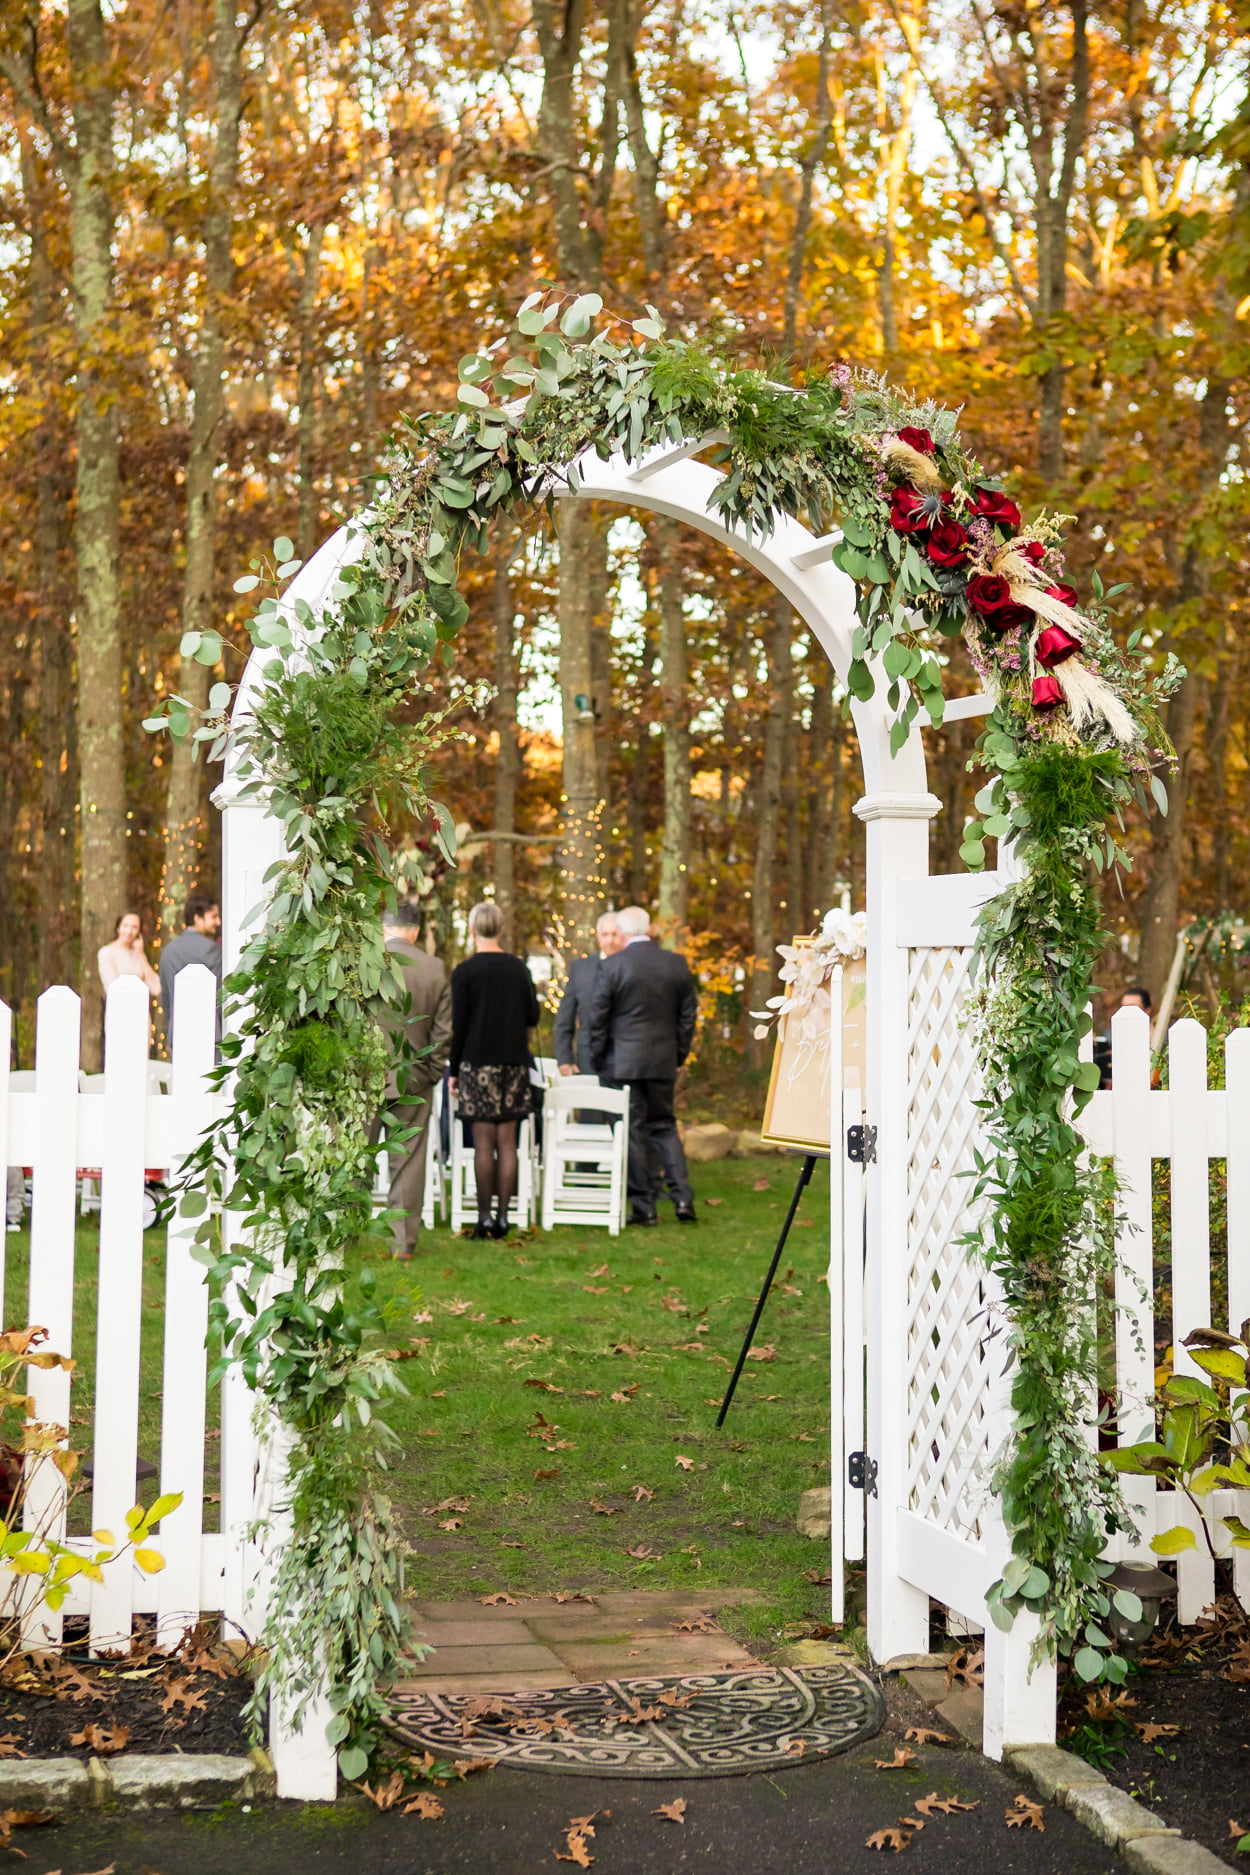 Nicholas Wedding arch